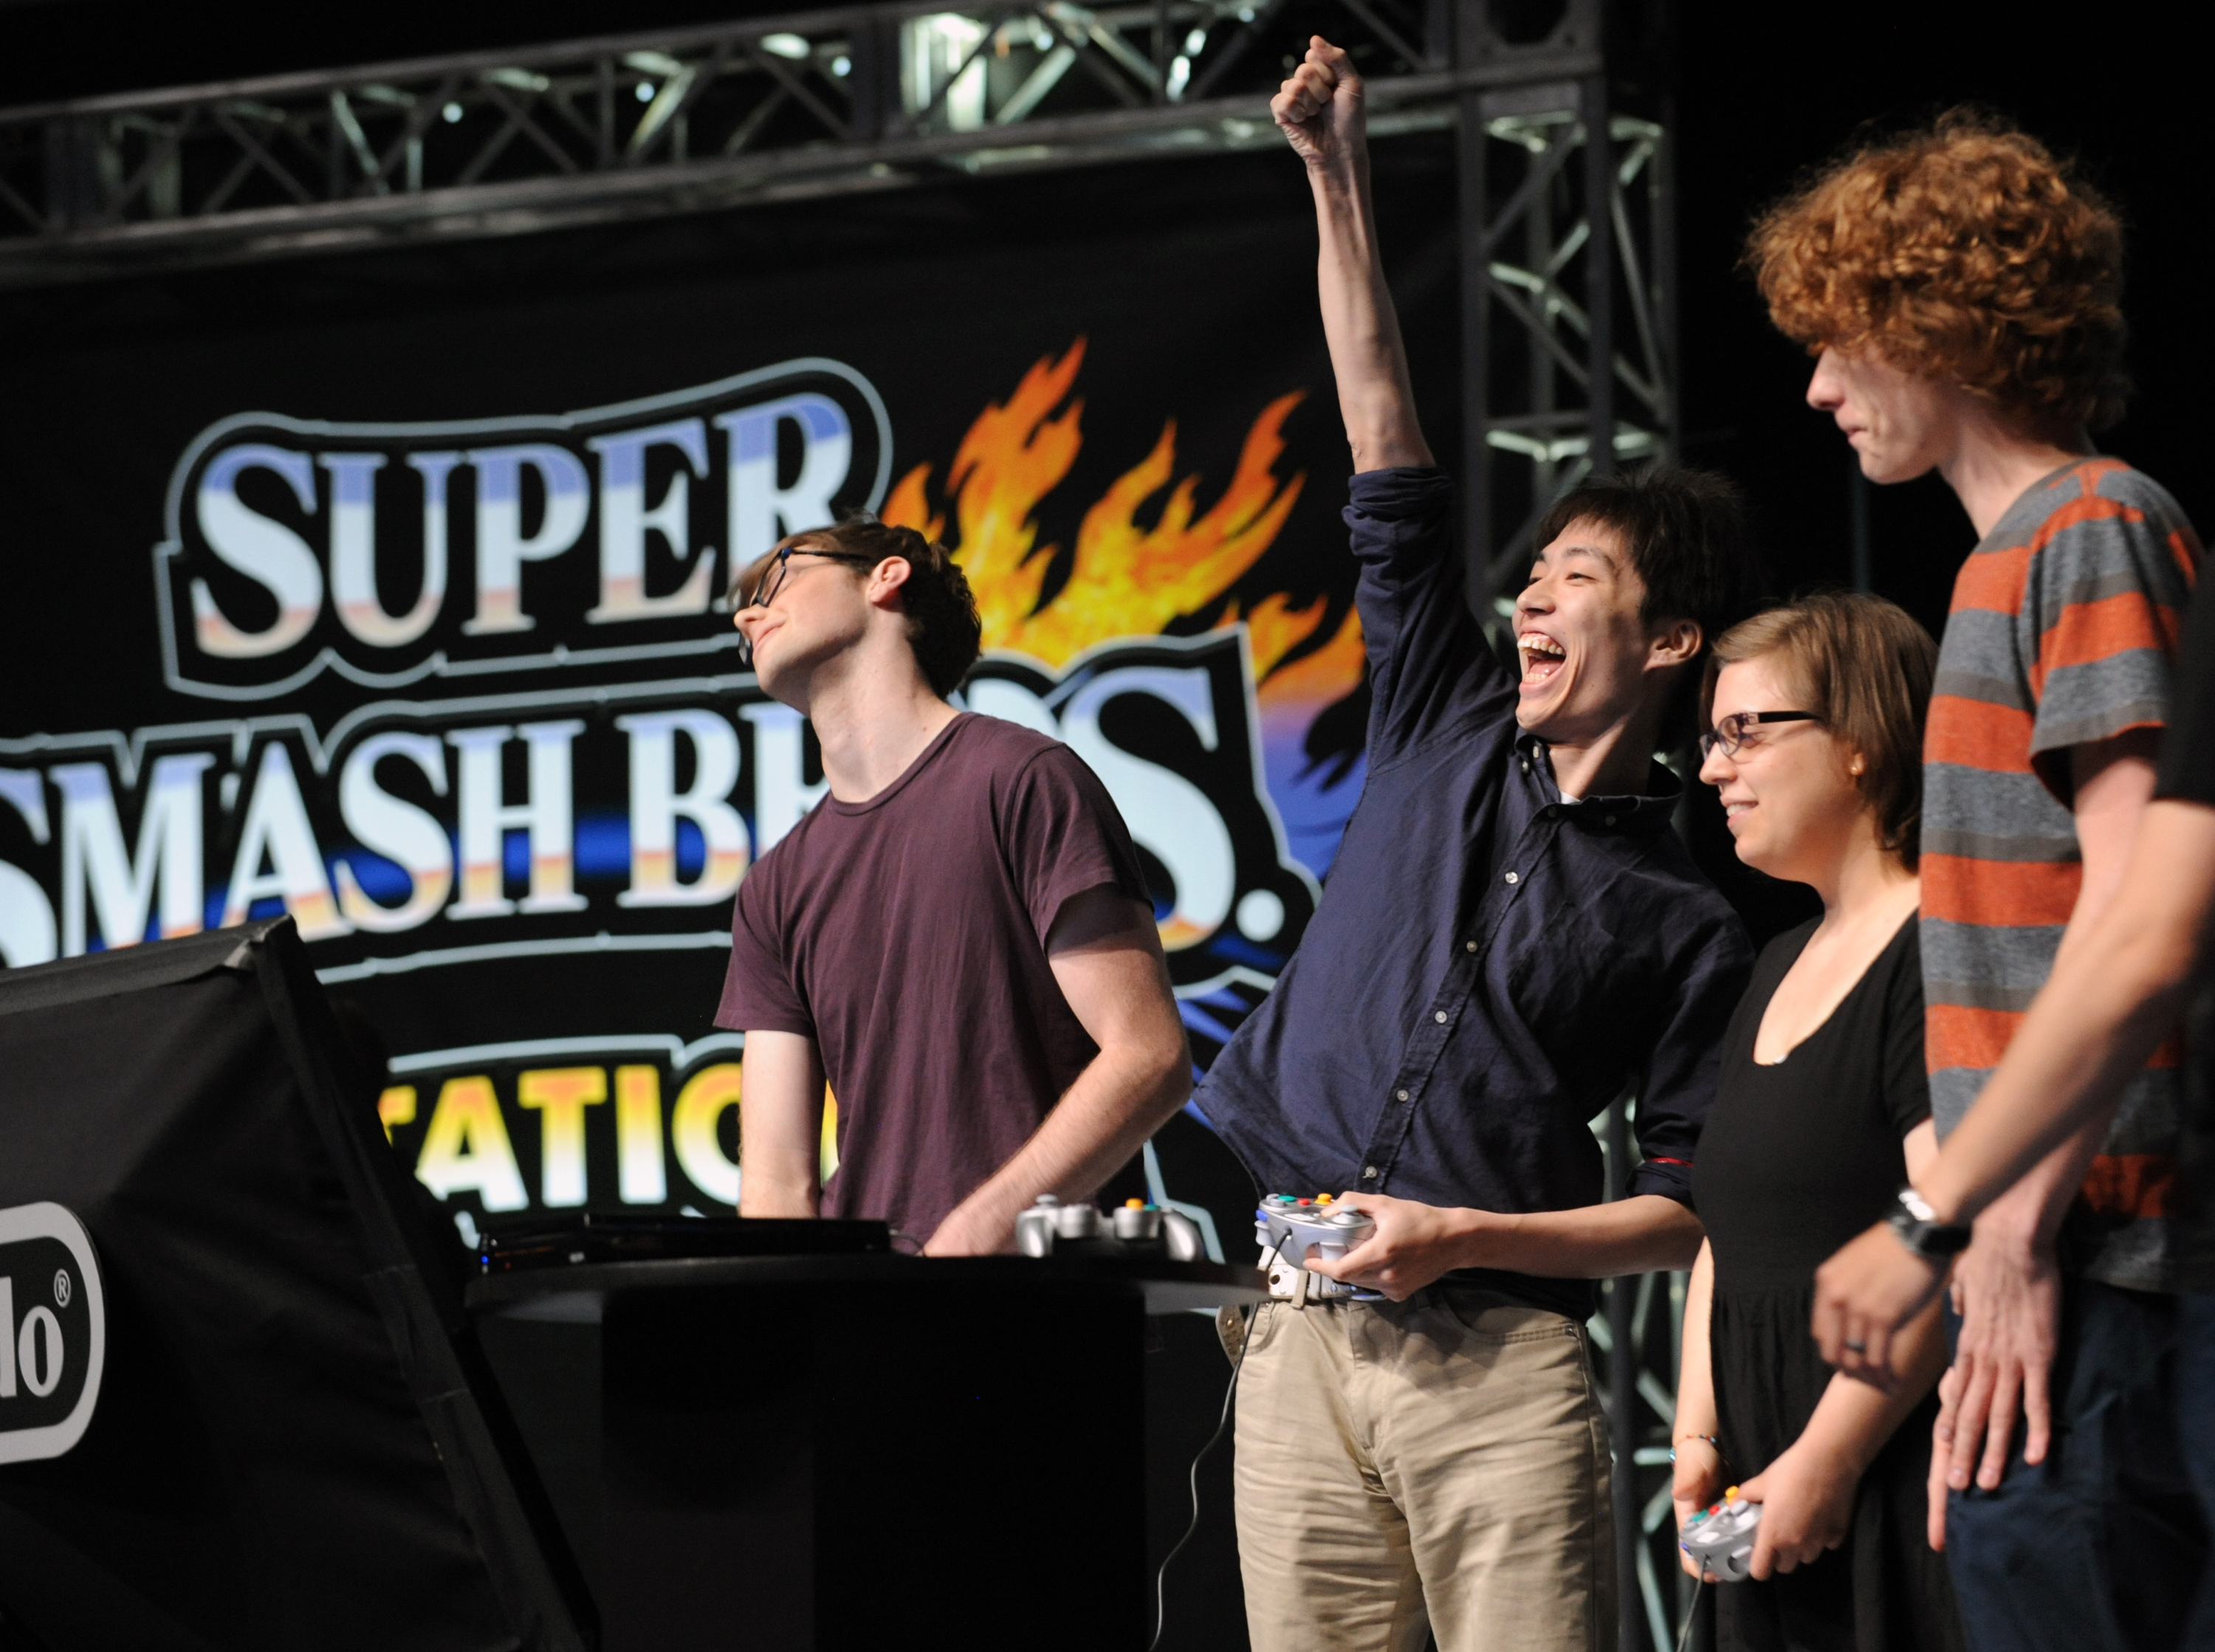 """In this photo provided by Nintendo of America, Masaya """"Amsa"""" Chikamoto of Japan celebrates a victory in a multiplayer battle at NOKIA Theatre L.A. LIVE in Los Angeles on June 10, 2014, to celebrate the upcoming launches of Nintendo's Super Smash Bros. video games for Nintendo 3DS and Wii U. Thousands of fans in the audience and countless more watching online witnessed new Super Smash Bros. characters clashing with existing favorites in action for the first time. (Photo: Business Wire)"""